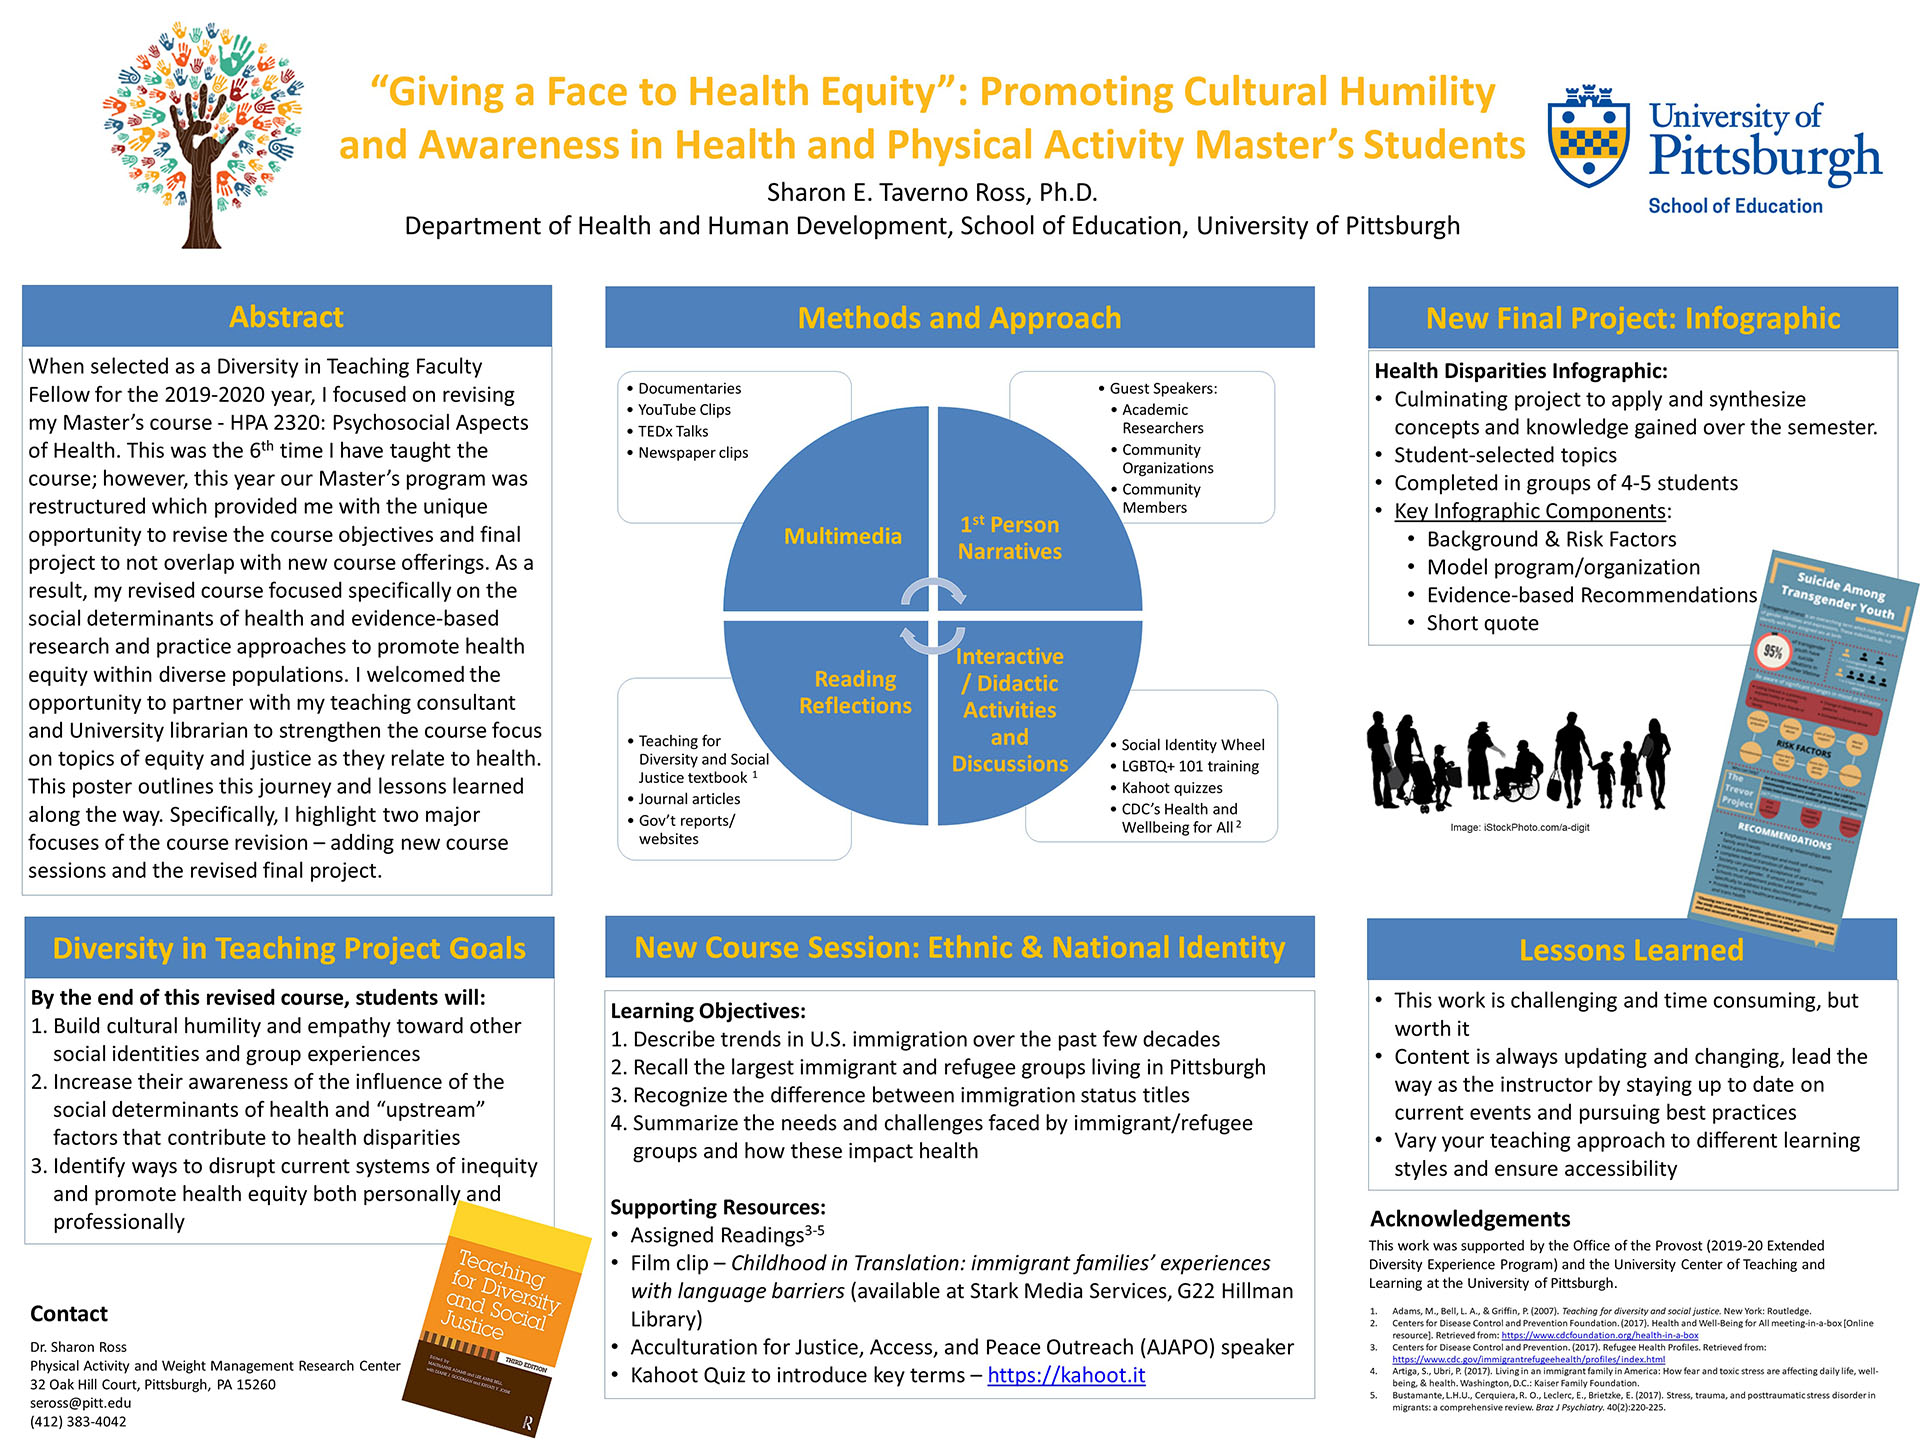 "Sharon E. Taverno Ross, PhD - Extended Diversity Experience 2020 Poster - ""Giving a Face to Health Equity"": Promoting Cultural Humility and Awareness in Health and Physical Activity Master's Students"